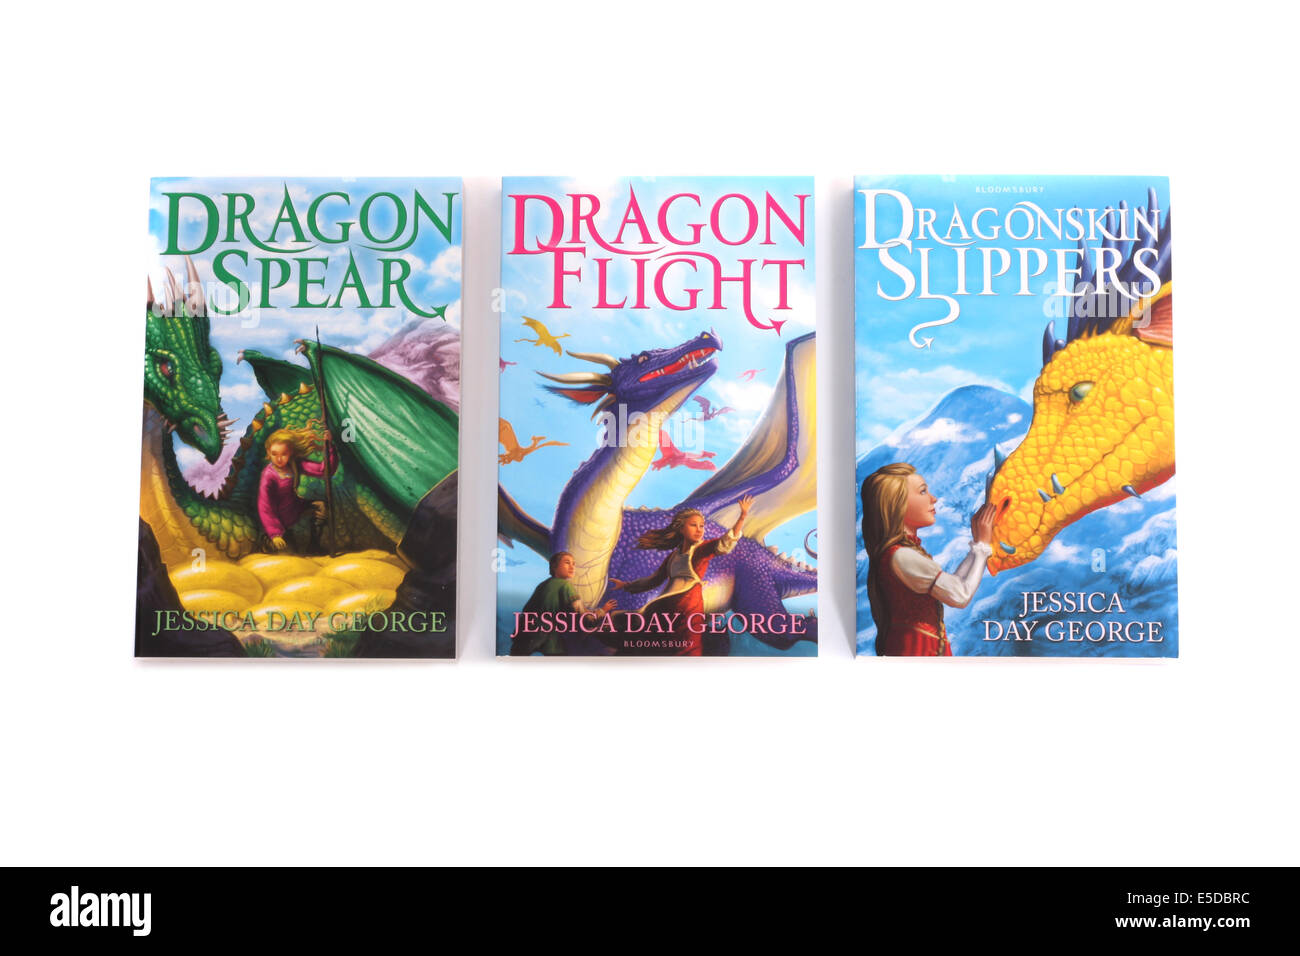 Three books by Jessica Day George, Dragon Spear, Dragon Flight and Dragonskin Slippers. - Stock Image